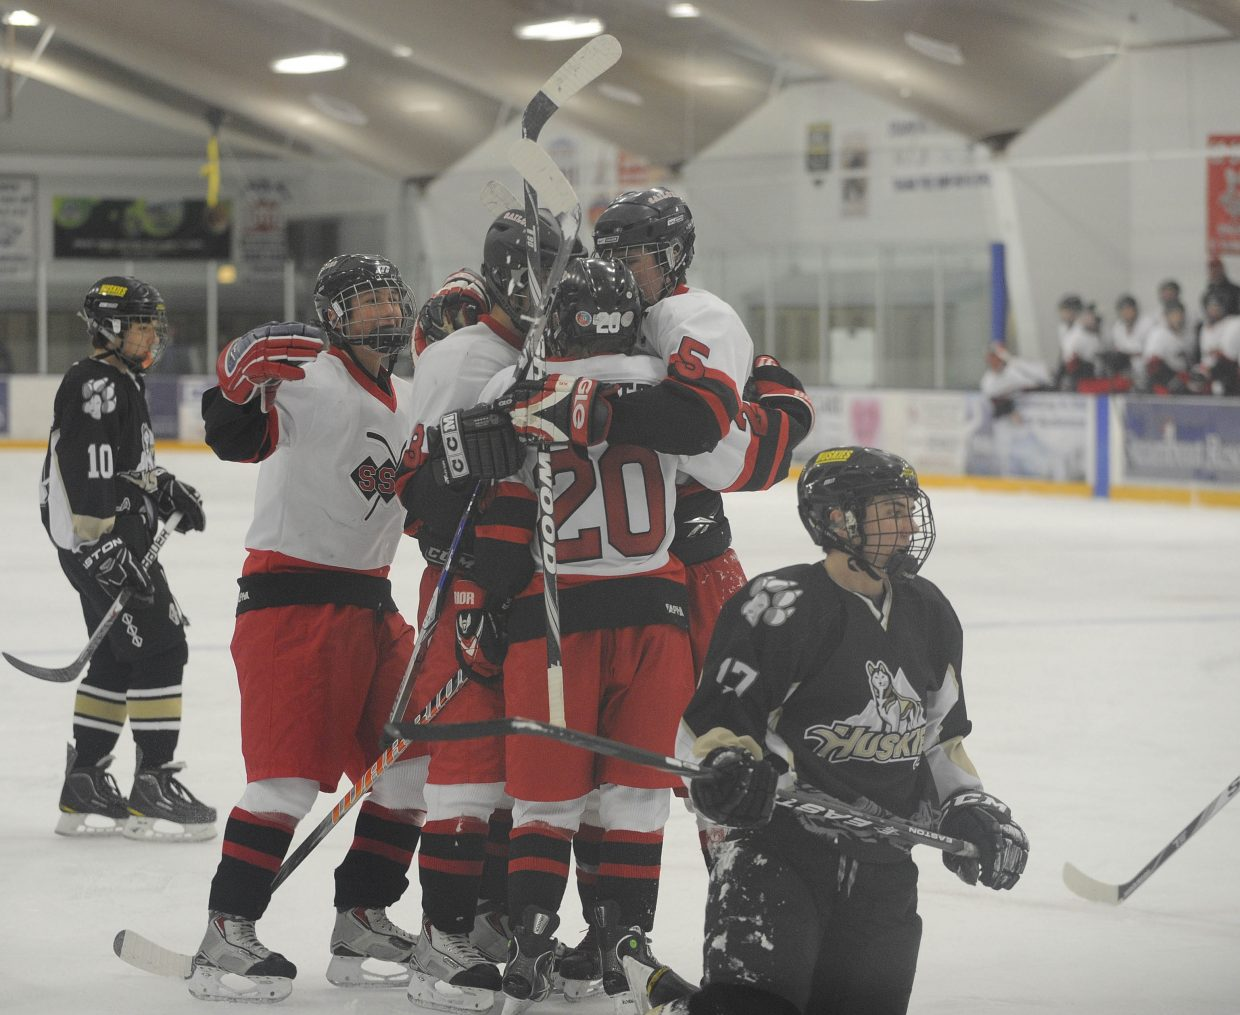 Members of the Steamboat Springs High School hockey team celebrate after a goal by sophomore Bobby Elliott during the first period of Saturday night's game against Battle Mountain High School.